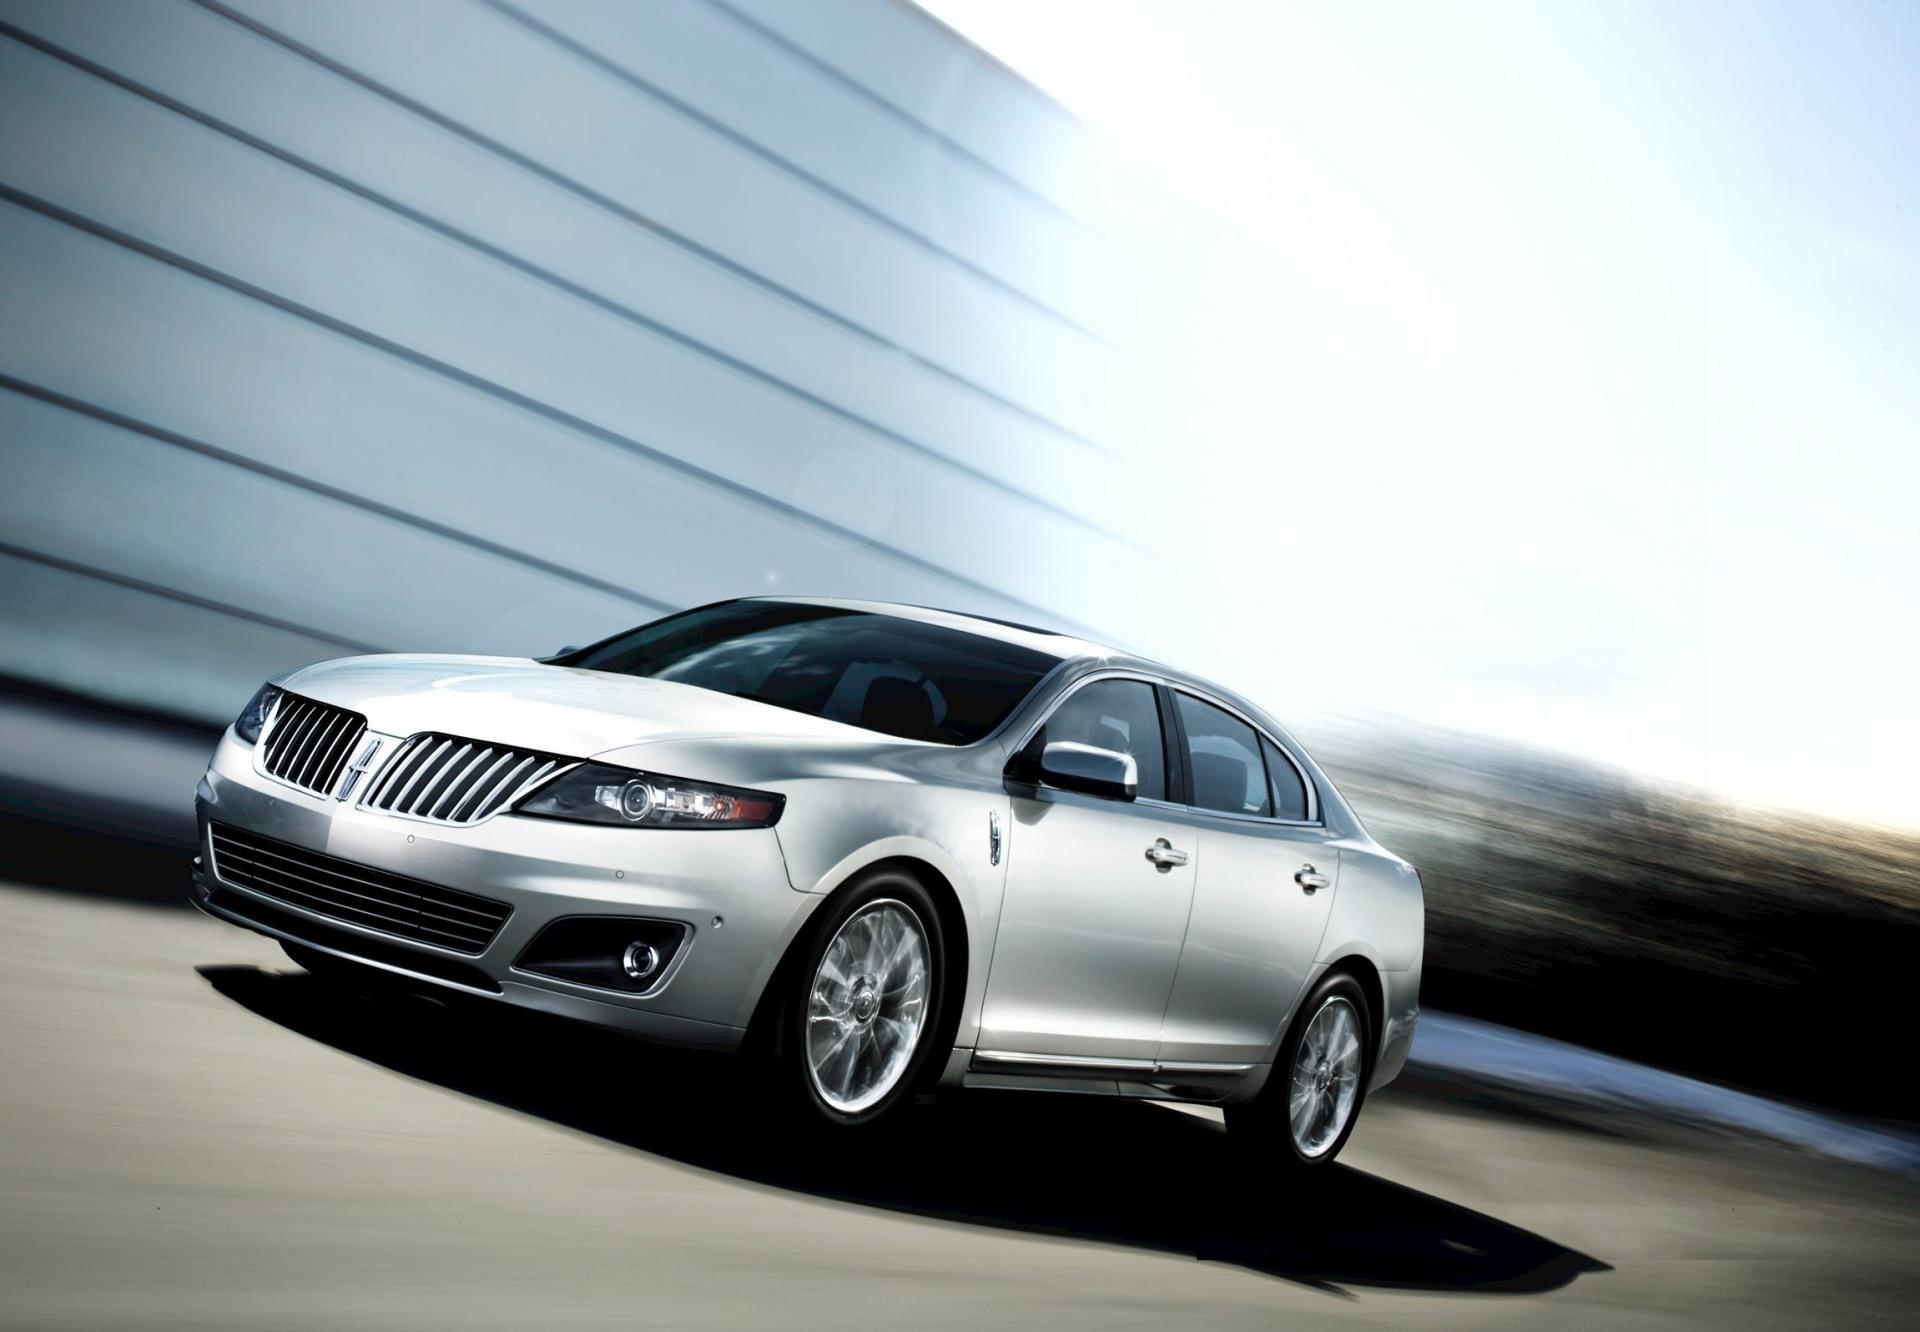 mks features reviews hybrid wheel mkz drive interior price front lincoln photos seats sedan